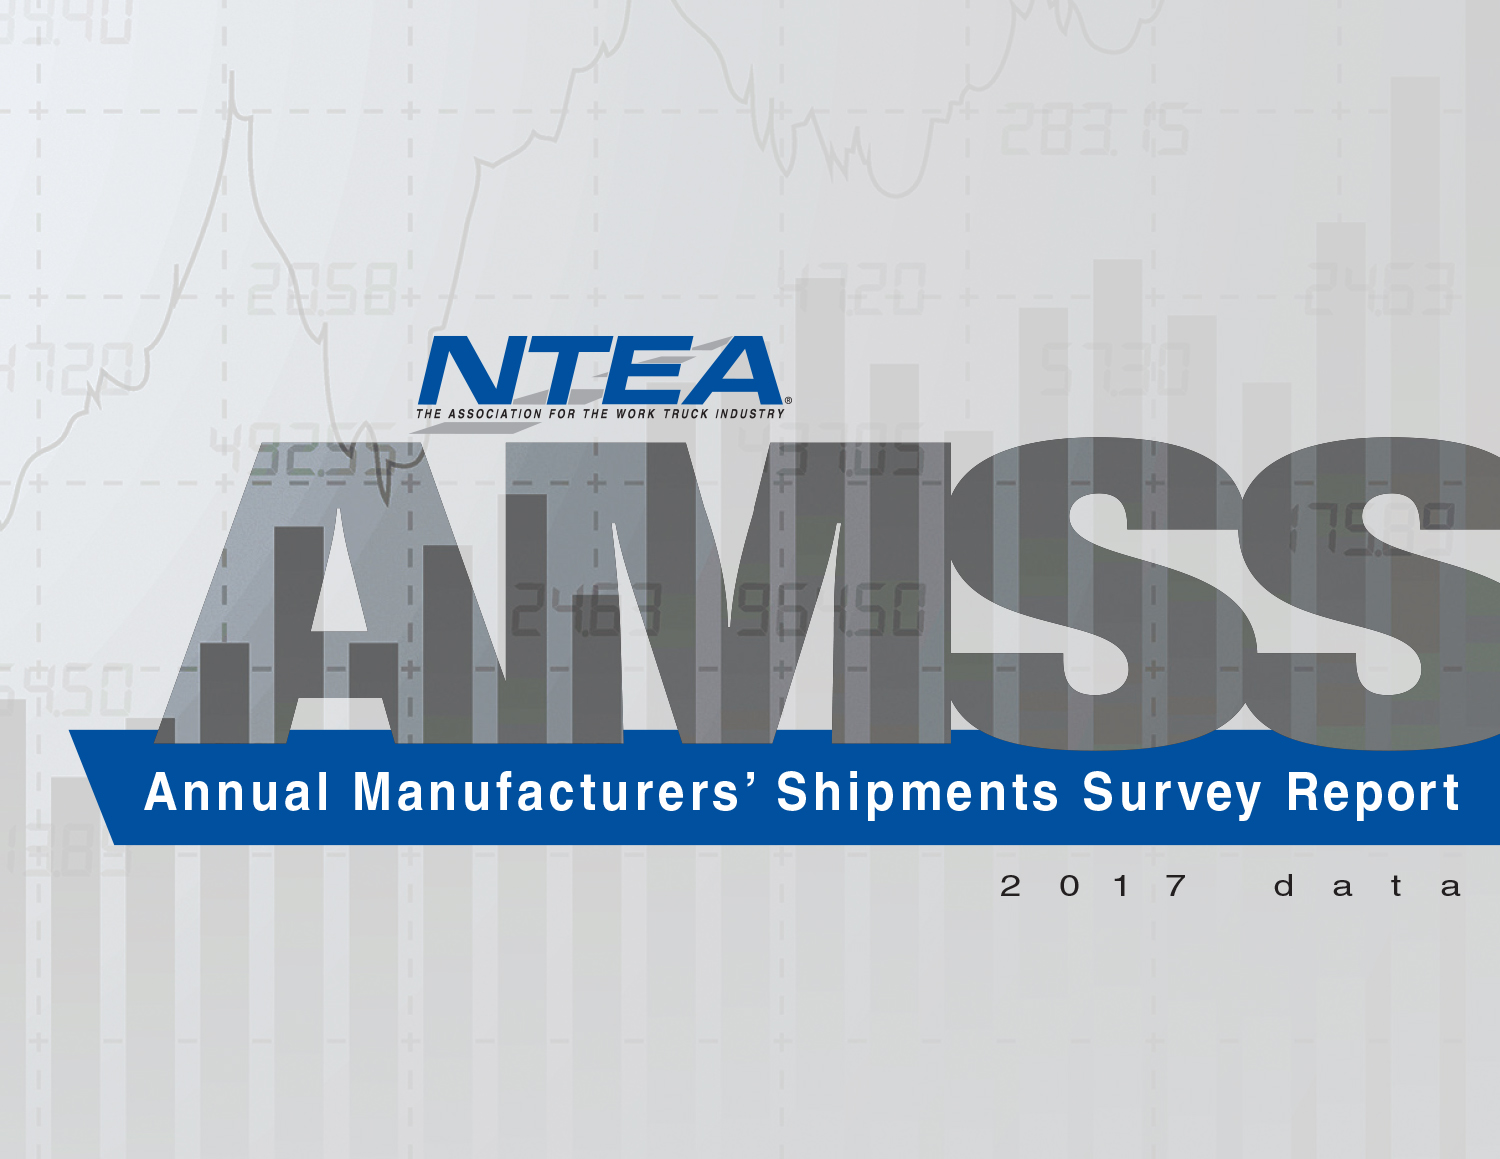 Annual Manufacturers' Shipments Survey Report